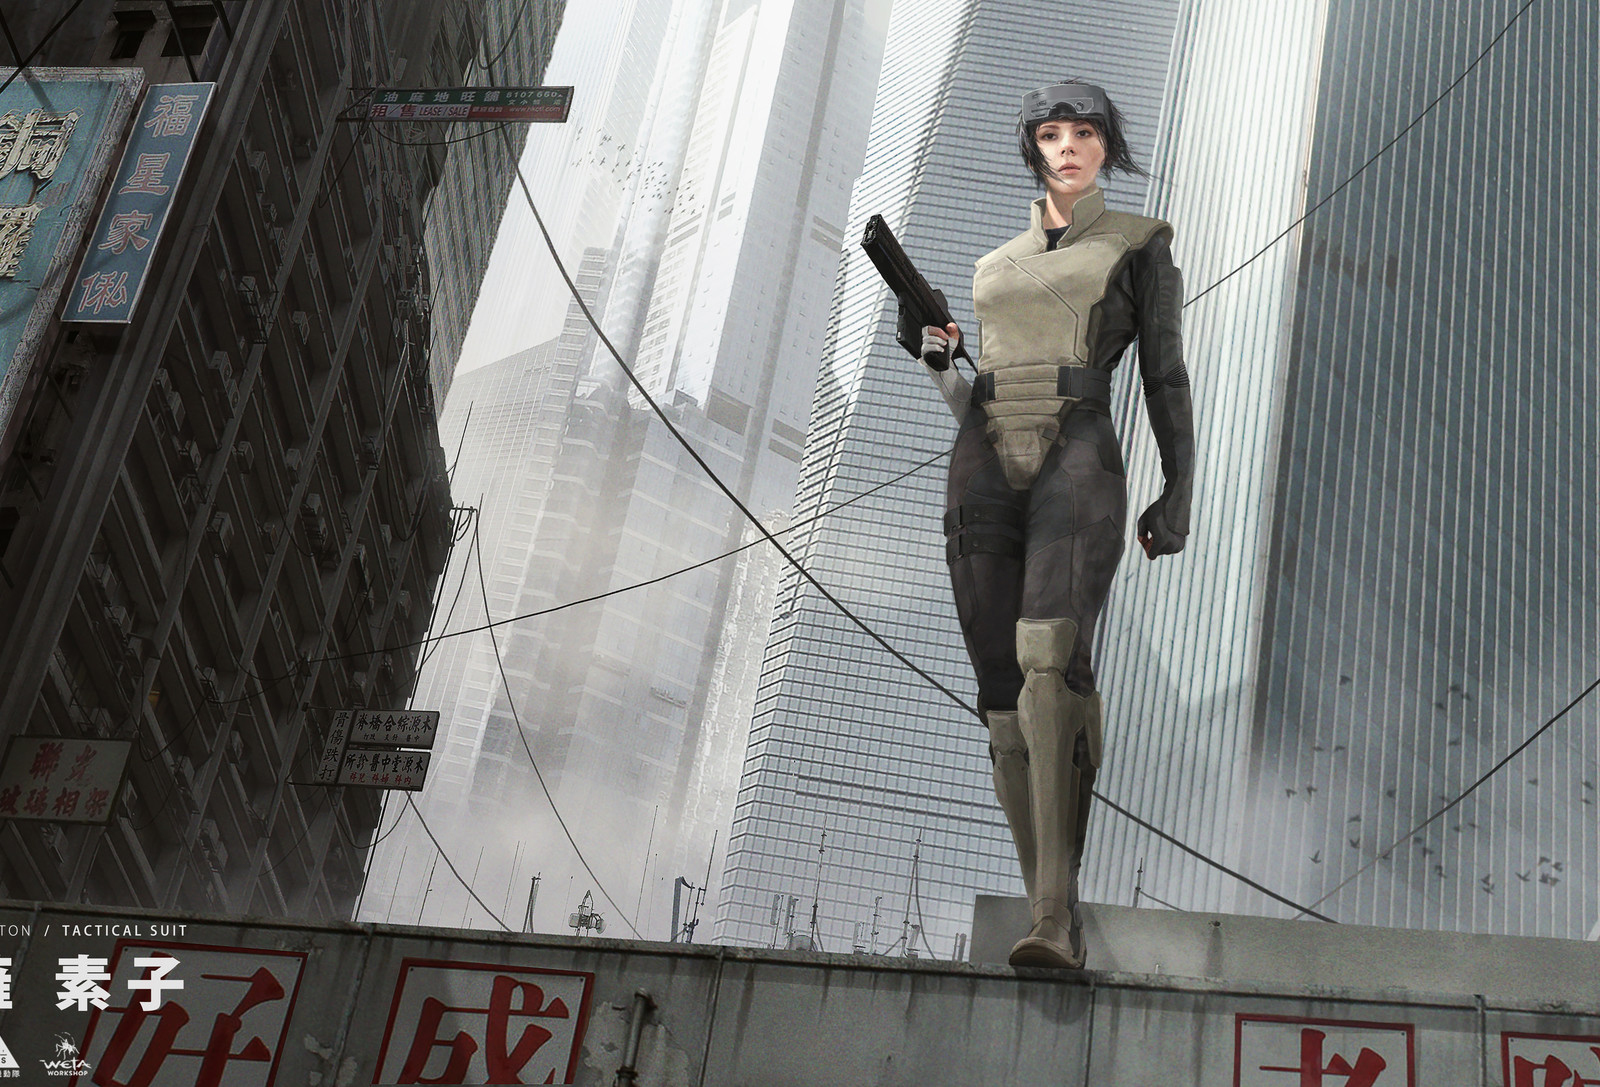 Desktop Wallpaper Ghost In The Shell Movie Art Hd Image Picture Background Knomek